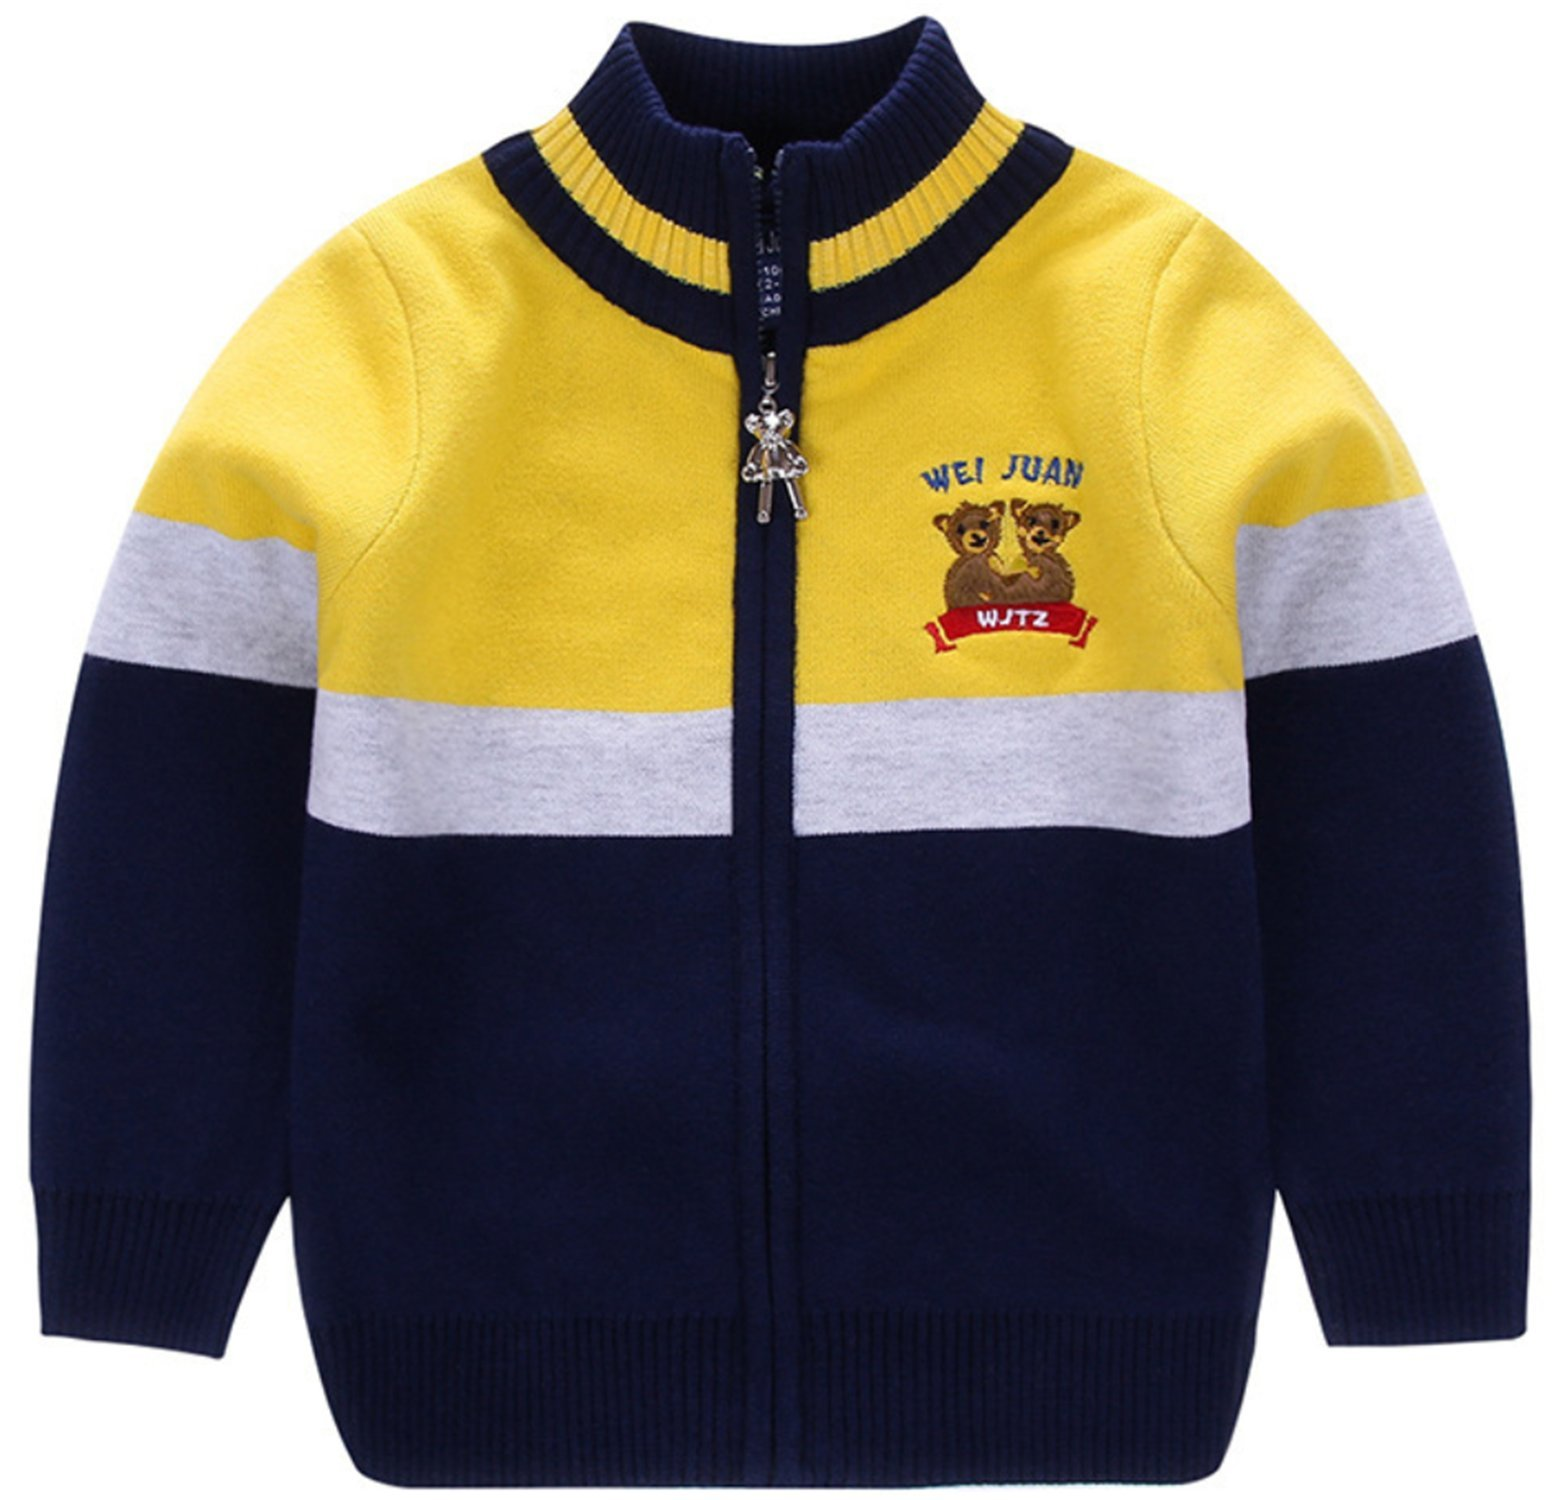 AUIE SAOSA Little Boys Spring and Autumn Stripe Knitted Cotton Coat zipper Cardigan Sweater Yellow Y130